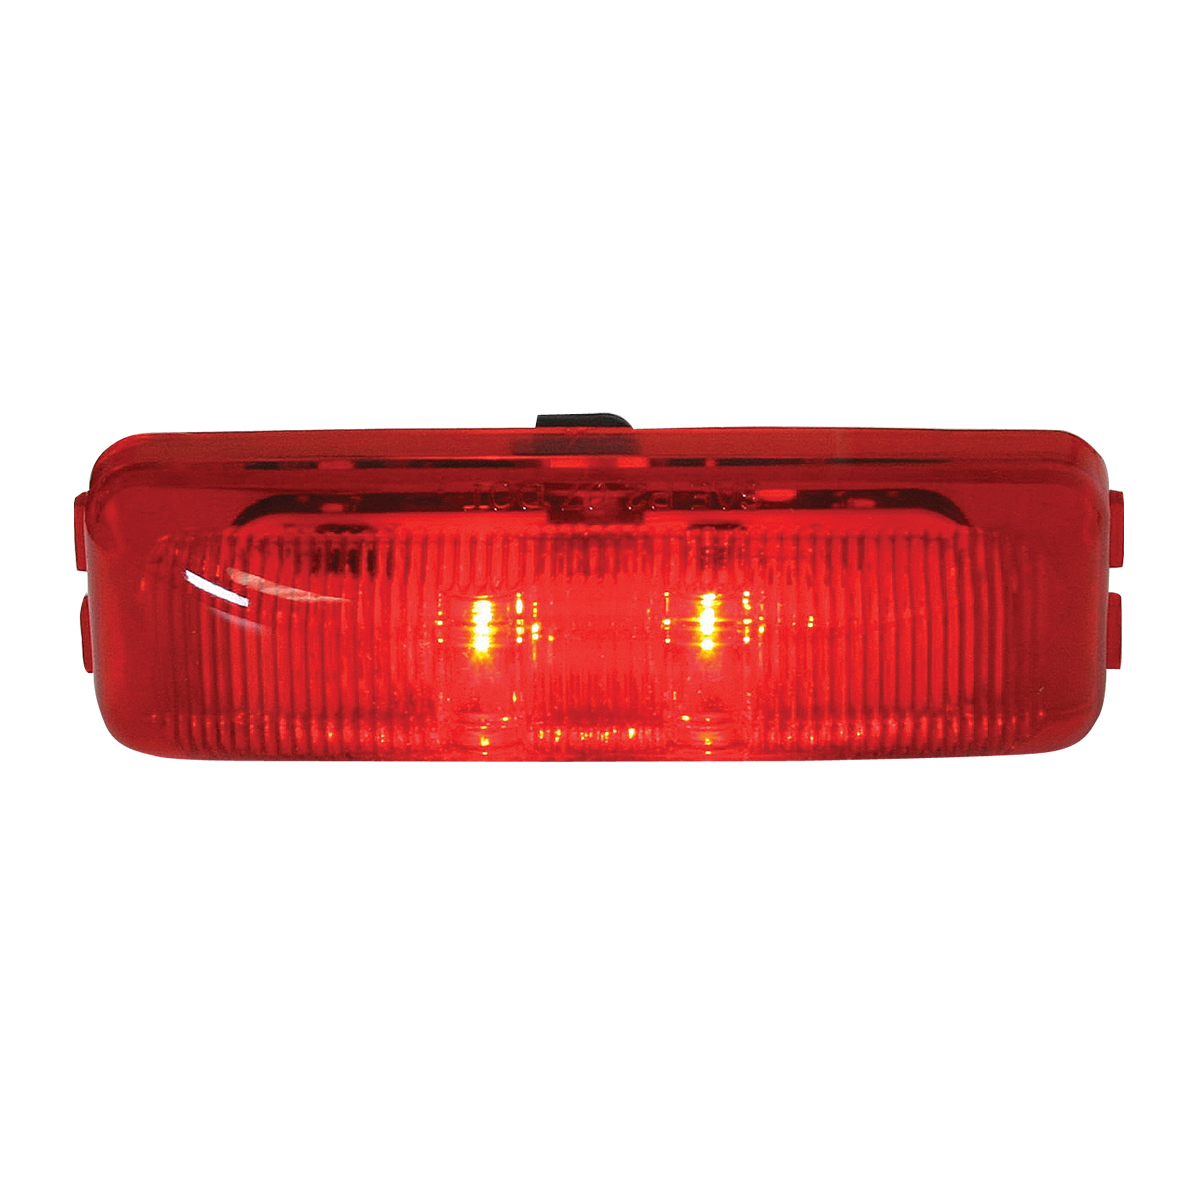 76402 Medium Rectangular Fleet LED Marker Light in Red/Red